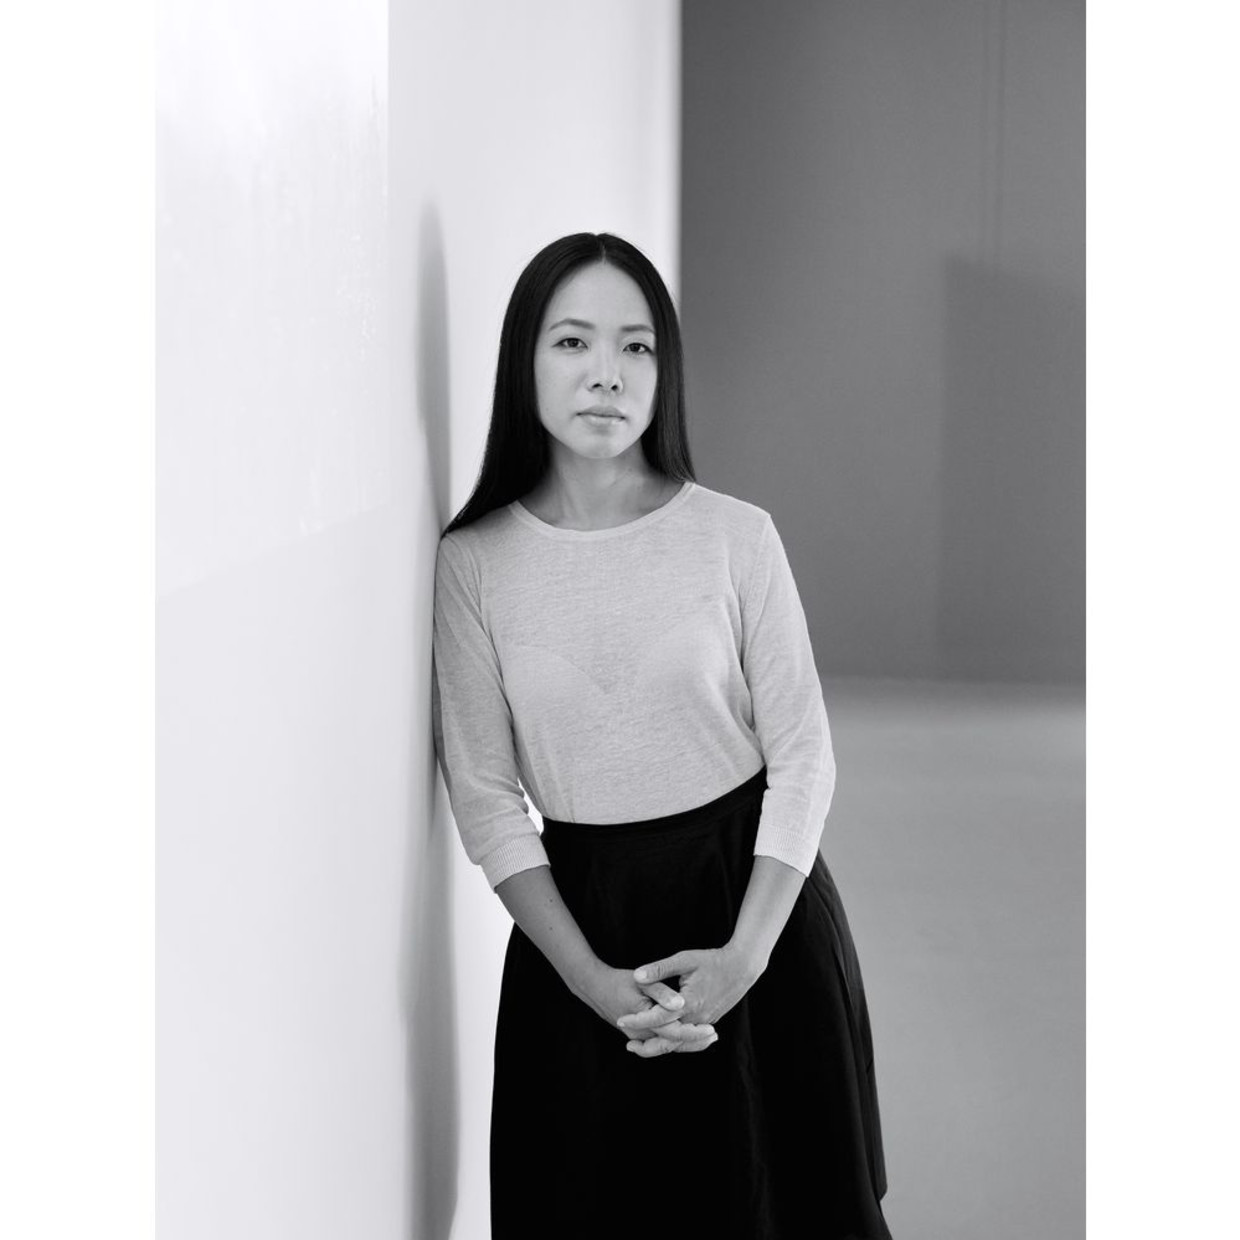 artist Sim Chi Yin A photographer and artist. She was born in Singapore in 1978, and currently live in London...